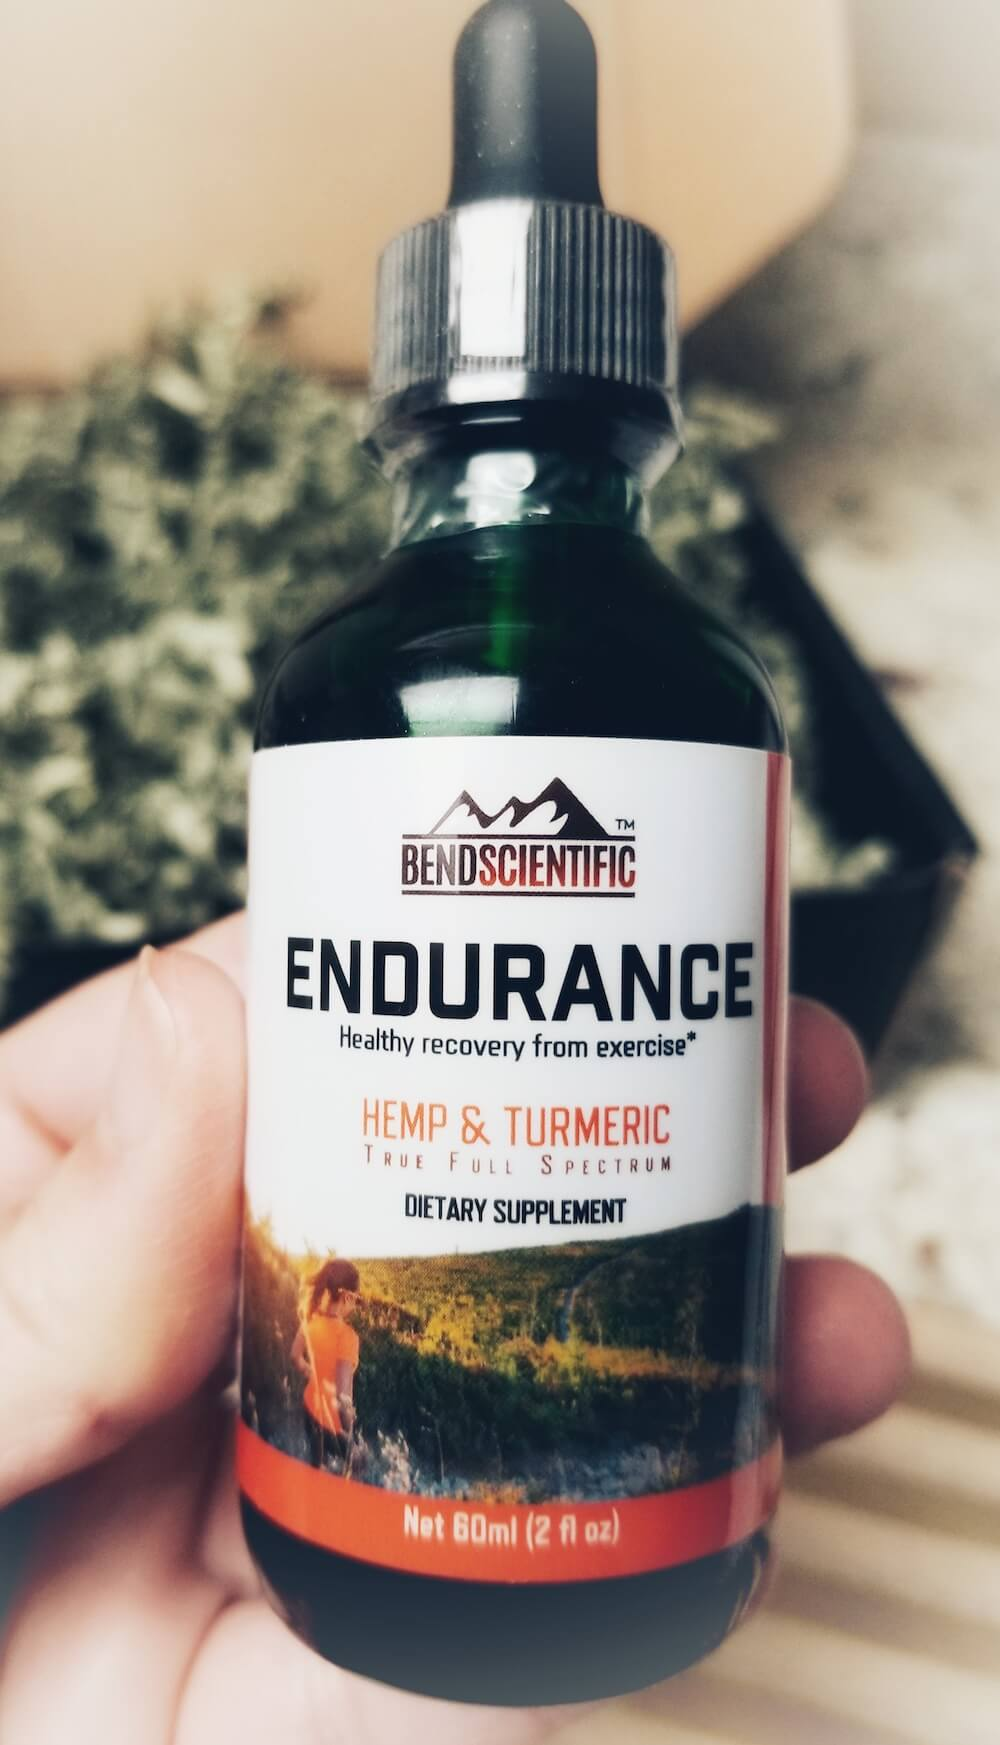 Bend Scientific's Endurance Hemp Extract Oil is physician formulated with the athlete in mind - promotes pre and post workout usage and recovery!